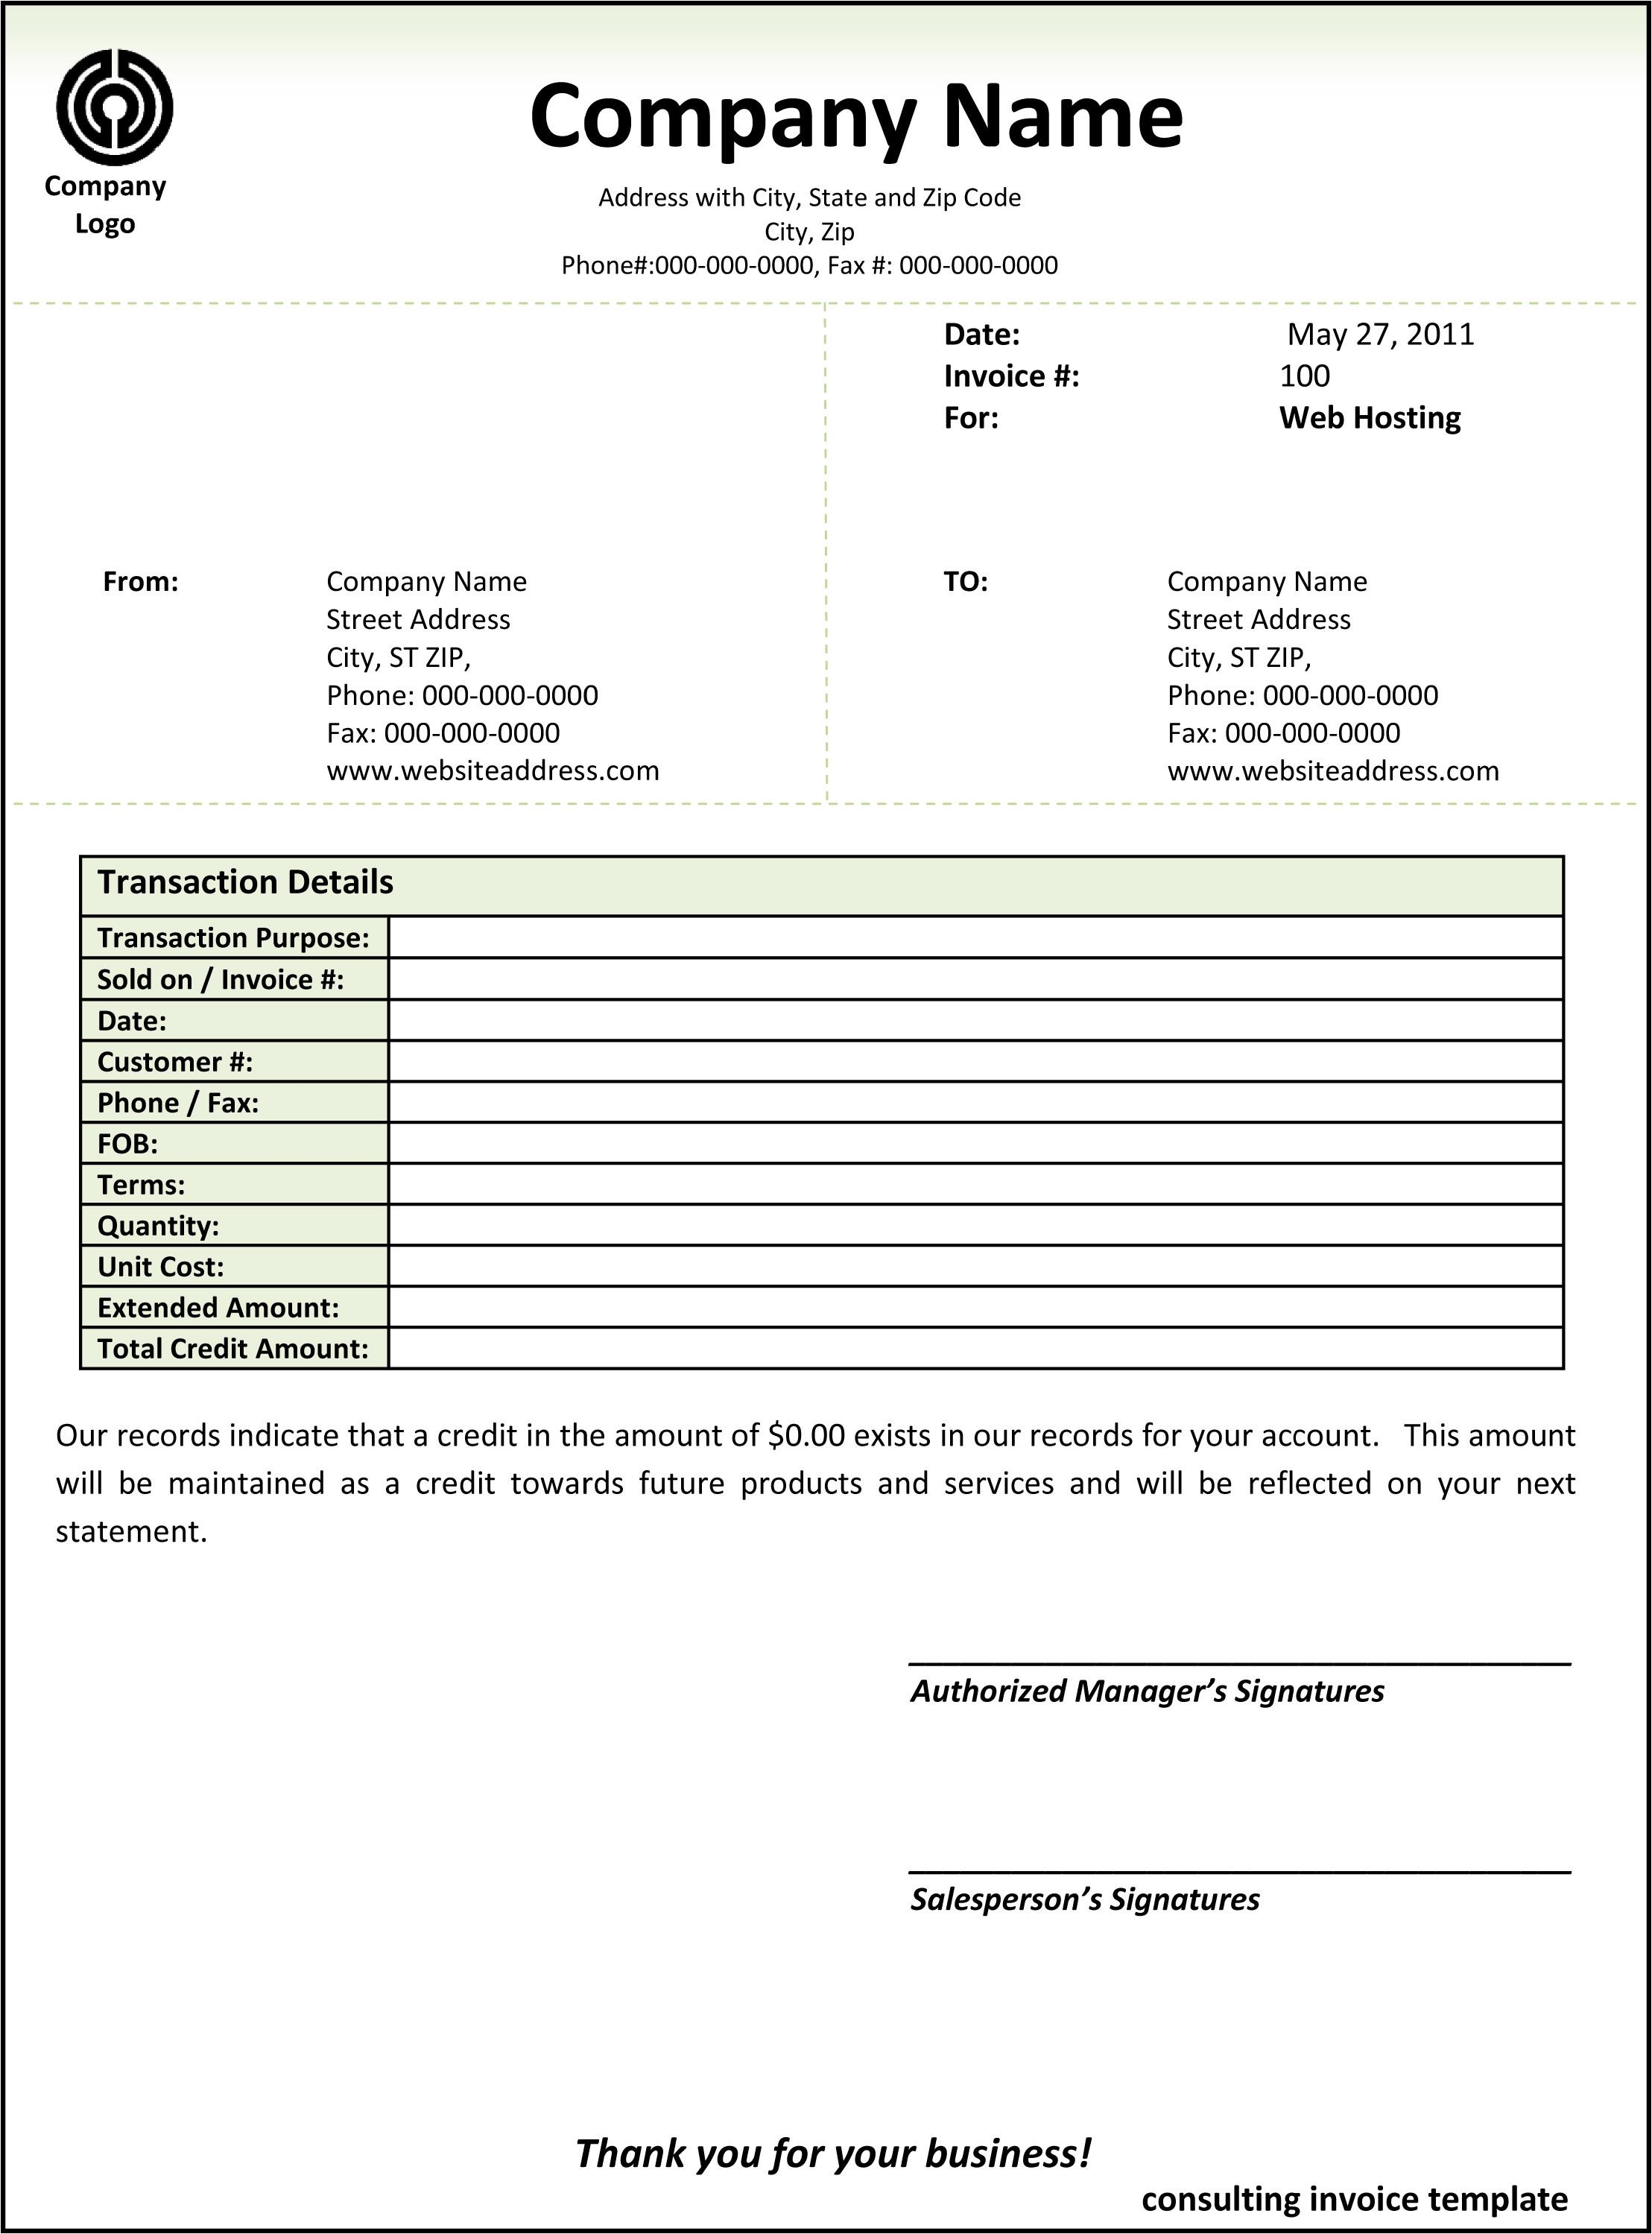 Consulting Invoice Examples